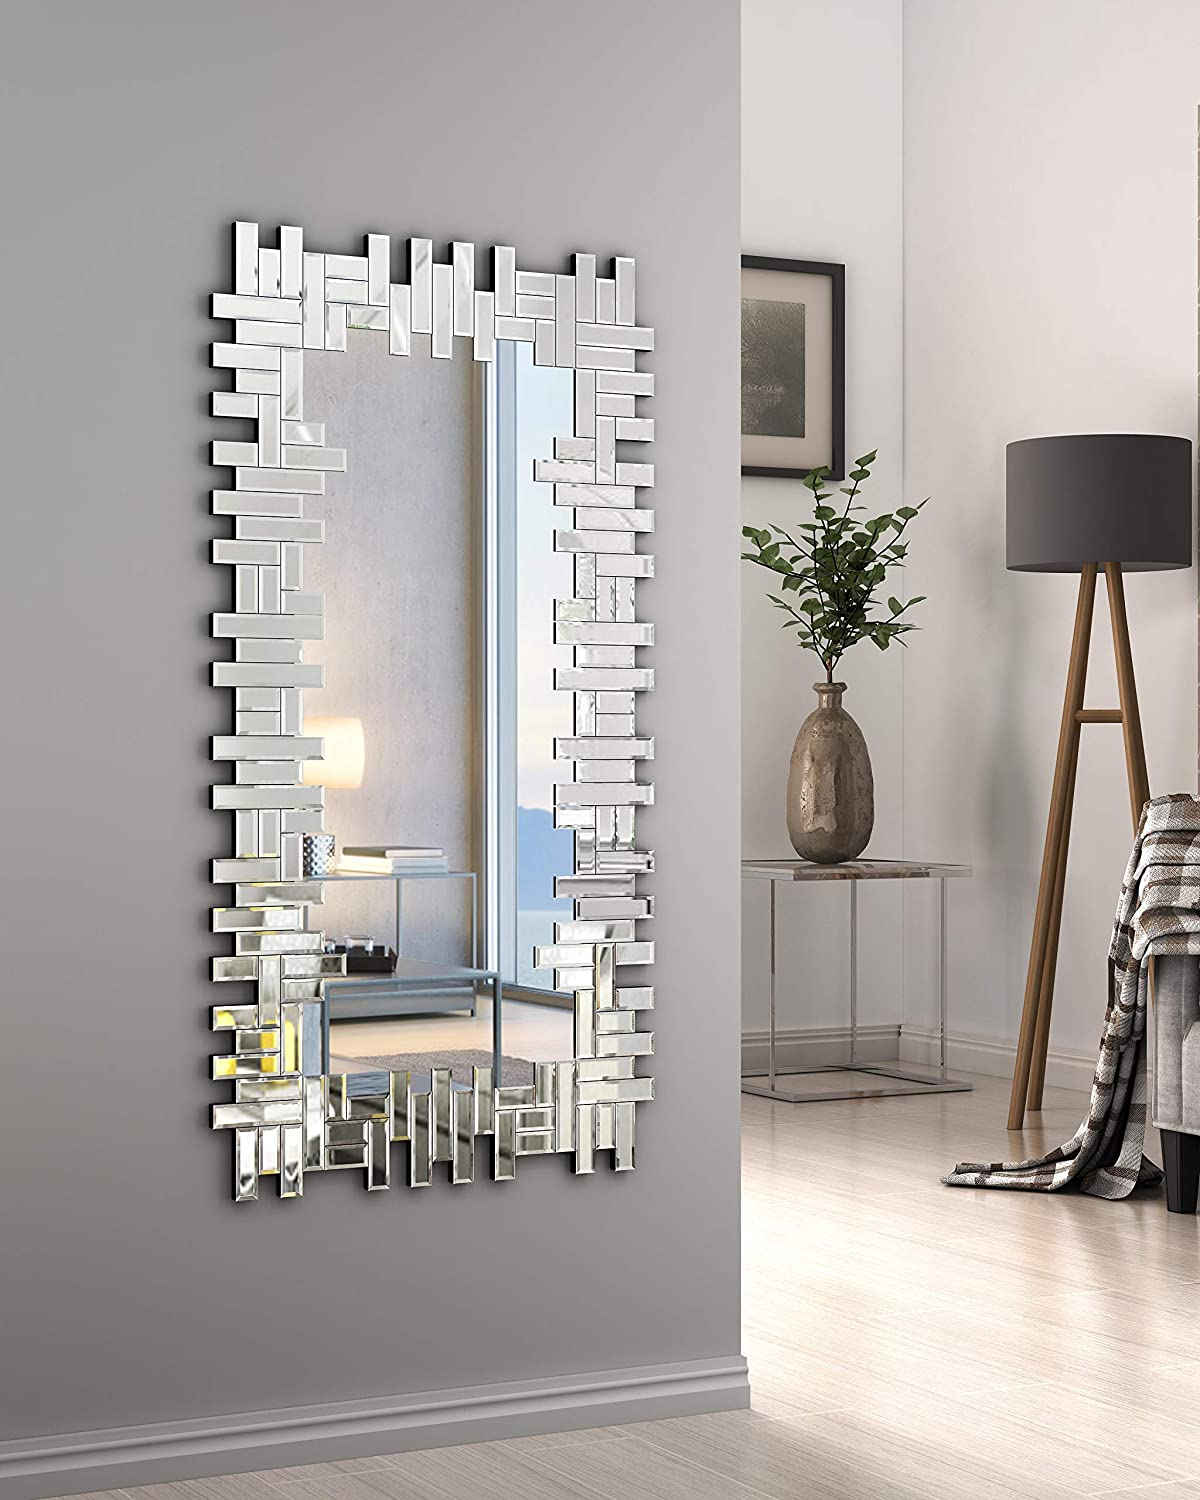 Kohros Art Decorative Wall Mirrors Large Grecian Venetian Mirror For Hotel Home Vanity Sliver Mirror W 24 8 X H 47 3 Rectangle Home Kitchen